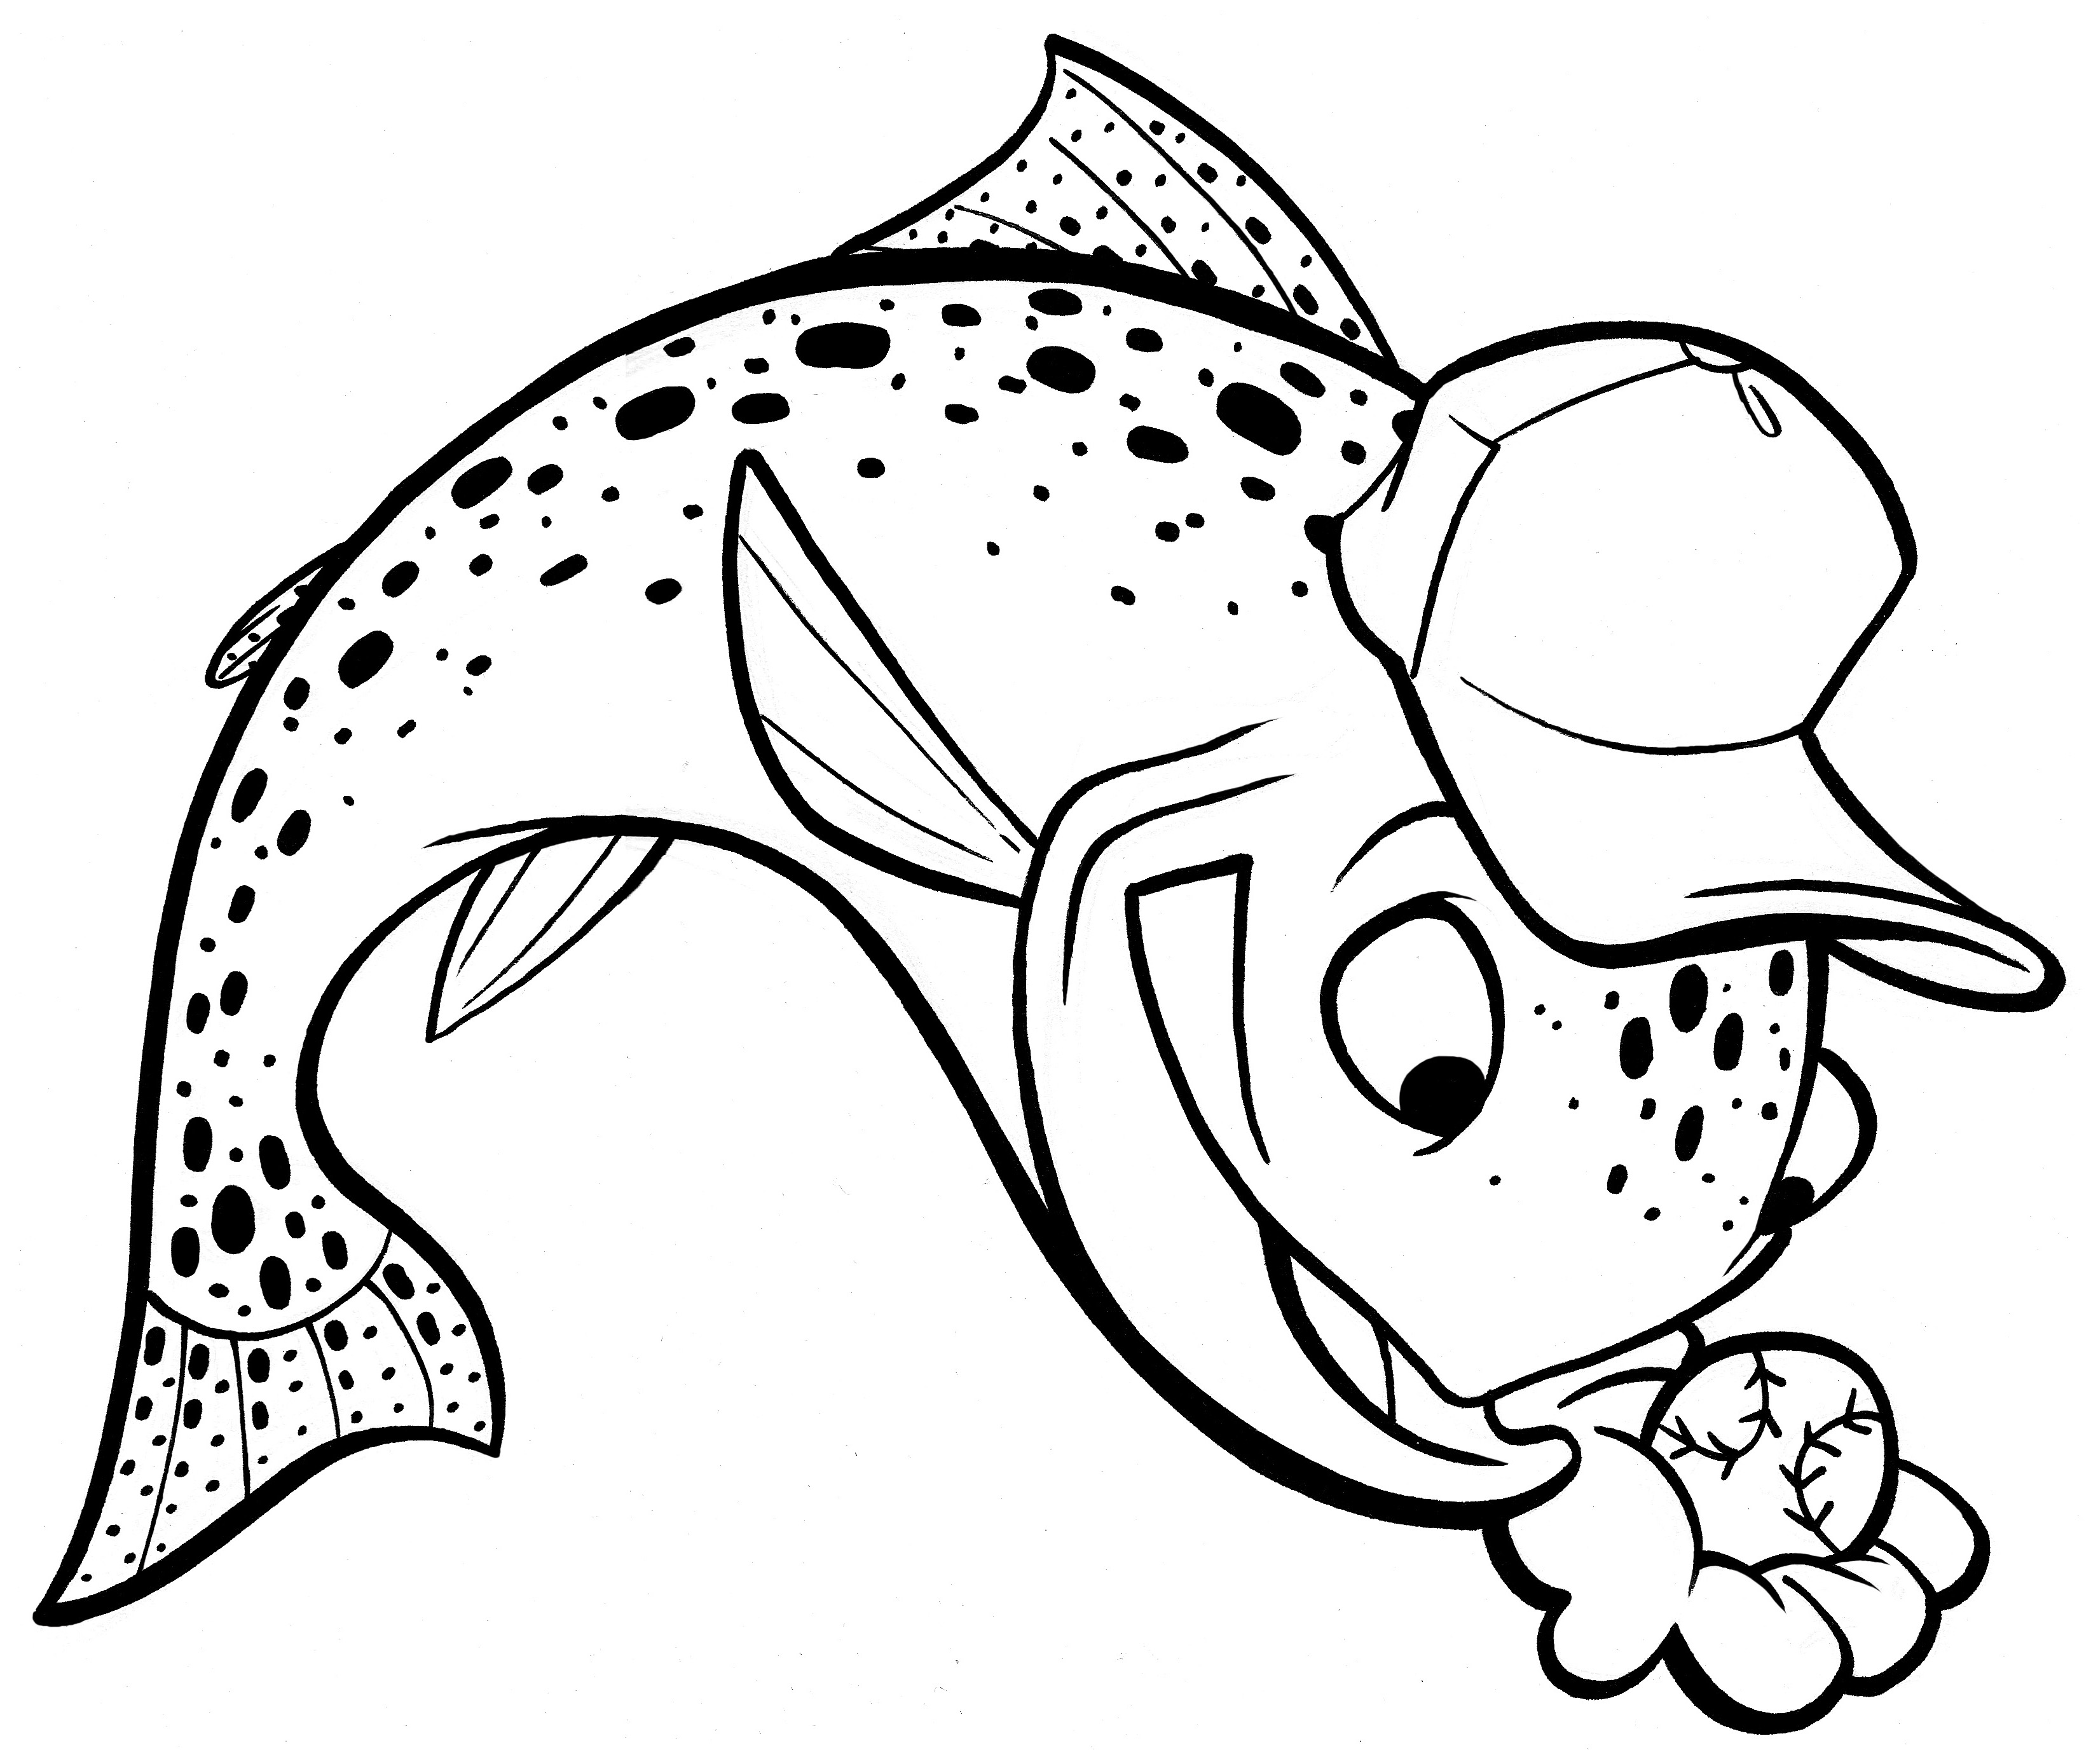 mlb coloring pages 027 - photo#12